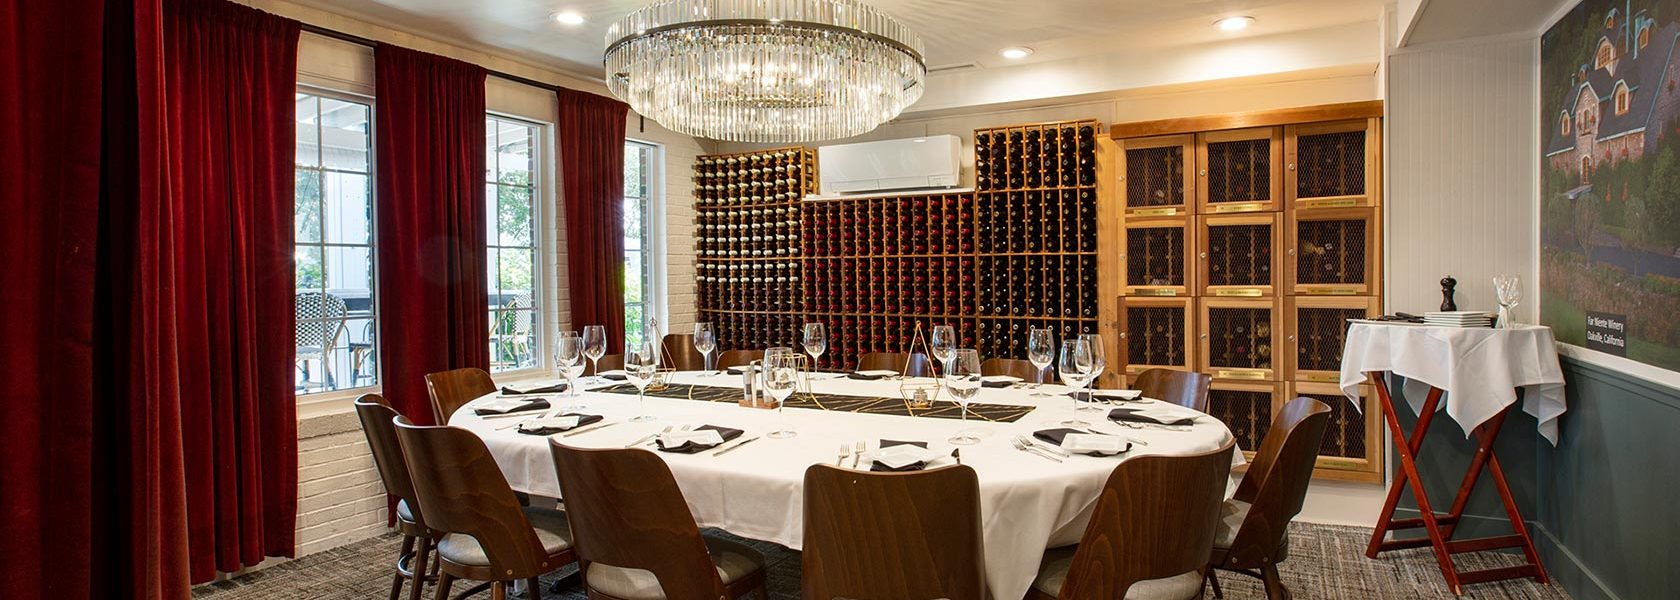 Private dining room and wine cellar with service set for 12 at oval table.